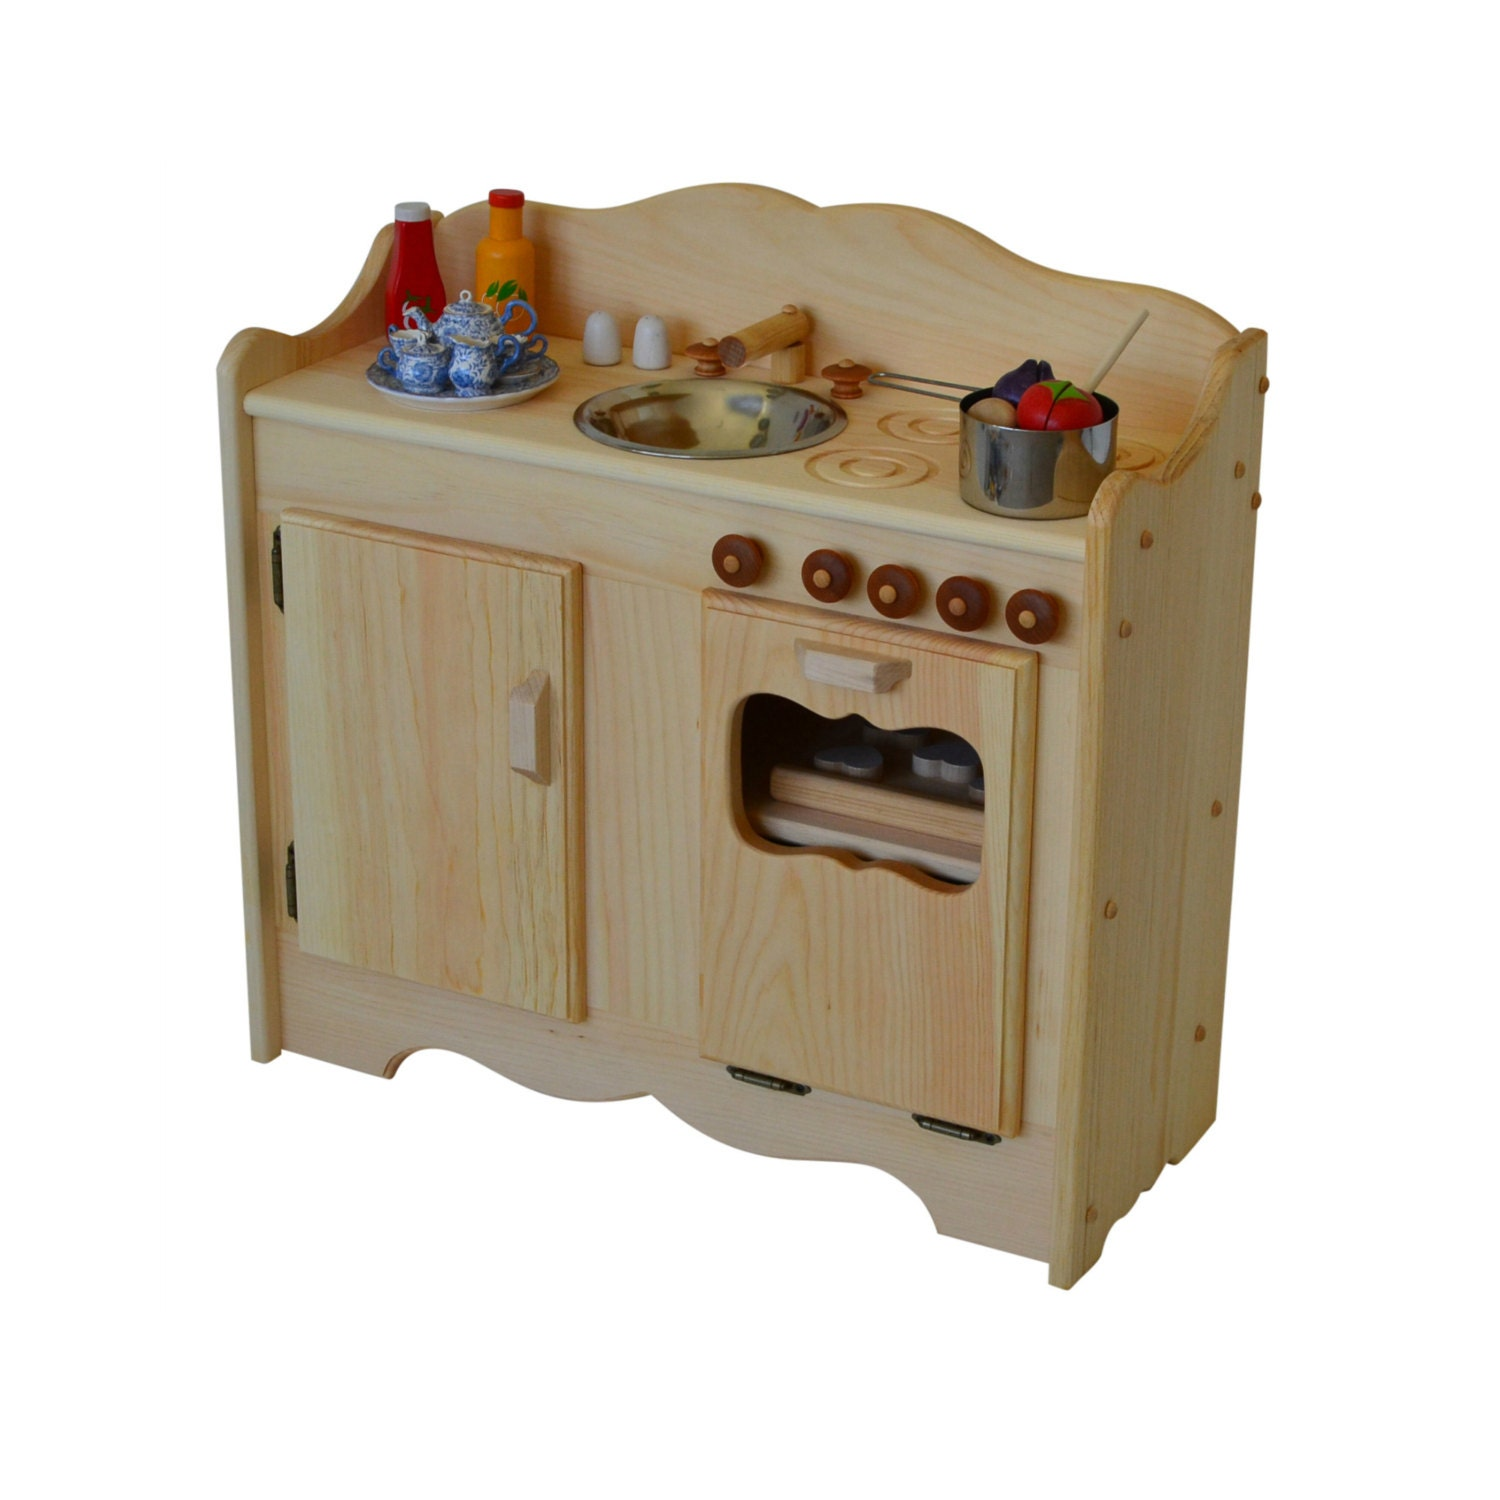 natural wooden play kitchen waldorf play stove child 39 s. Black Bedroom Furniture Sets. Home Design Ideas